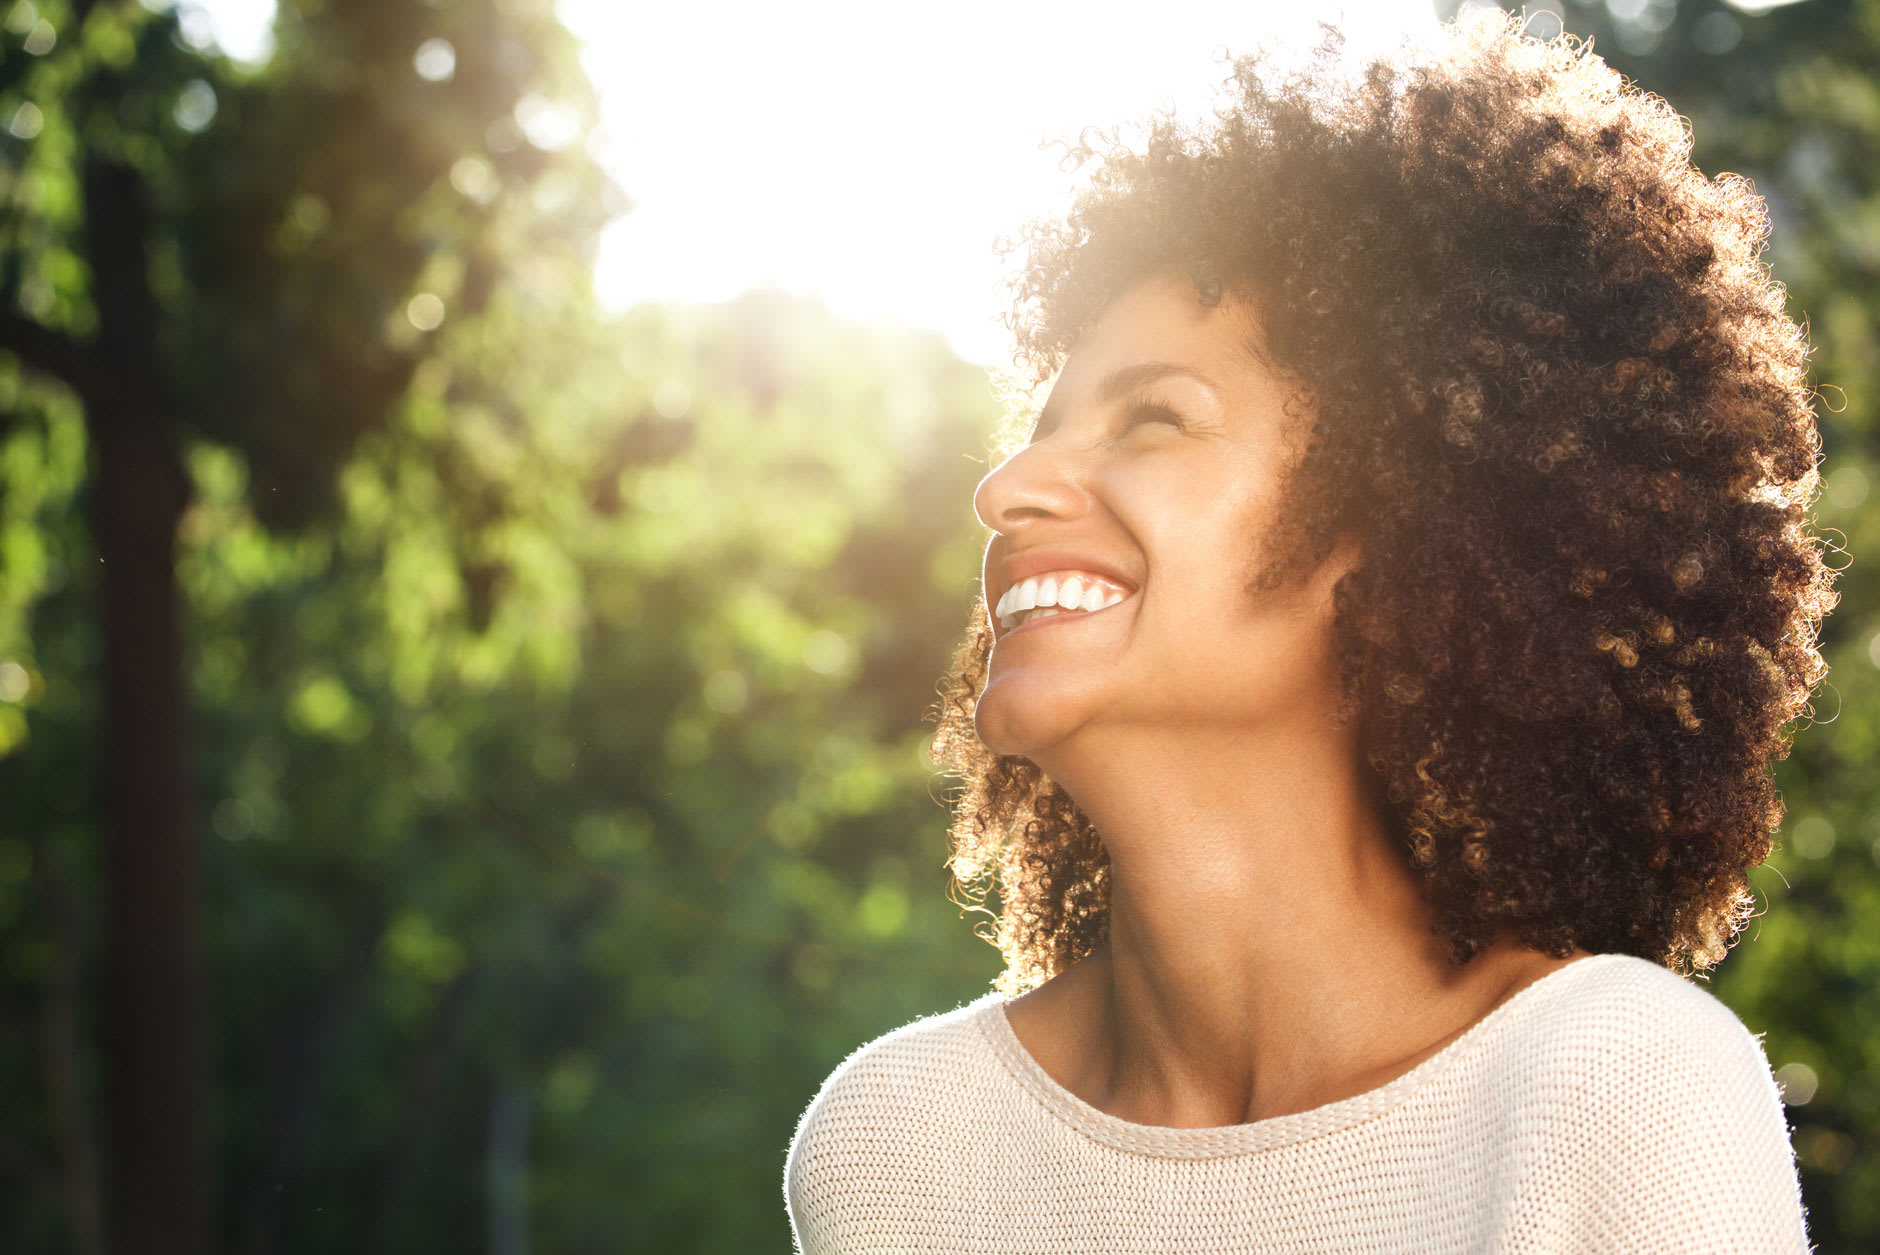 A woman in her 30s is smiling outdoors as she feels secure wearing dentures with Fixodent, which makes it easier for her to choose between dentures or implants.